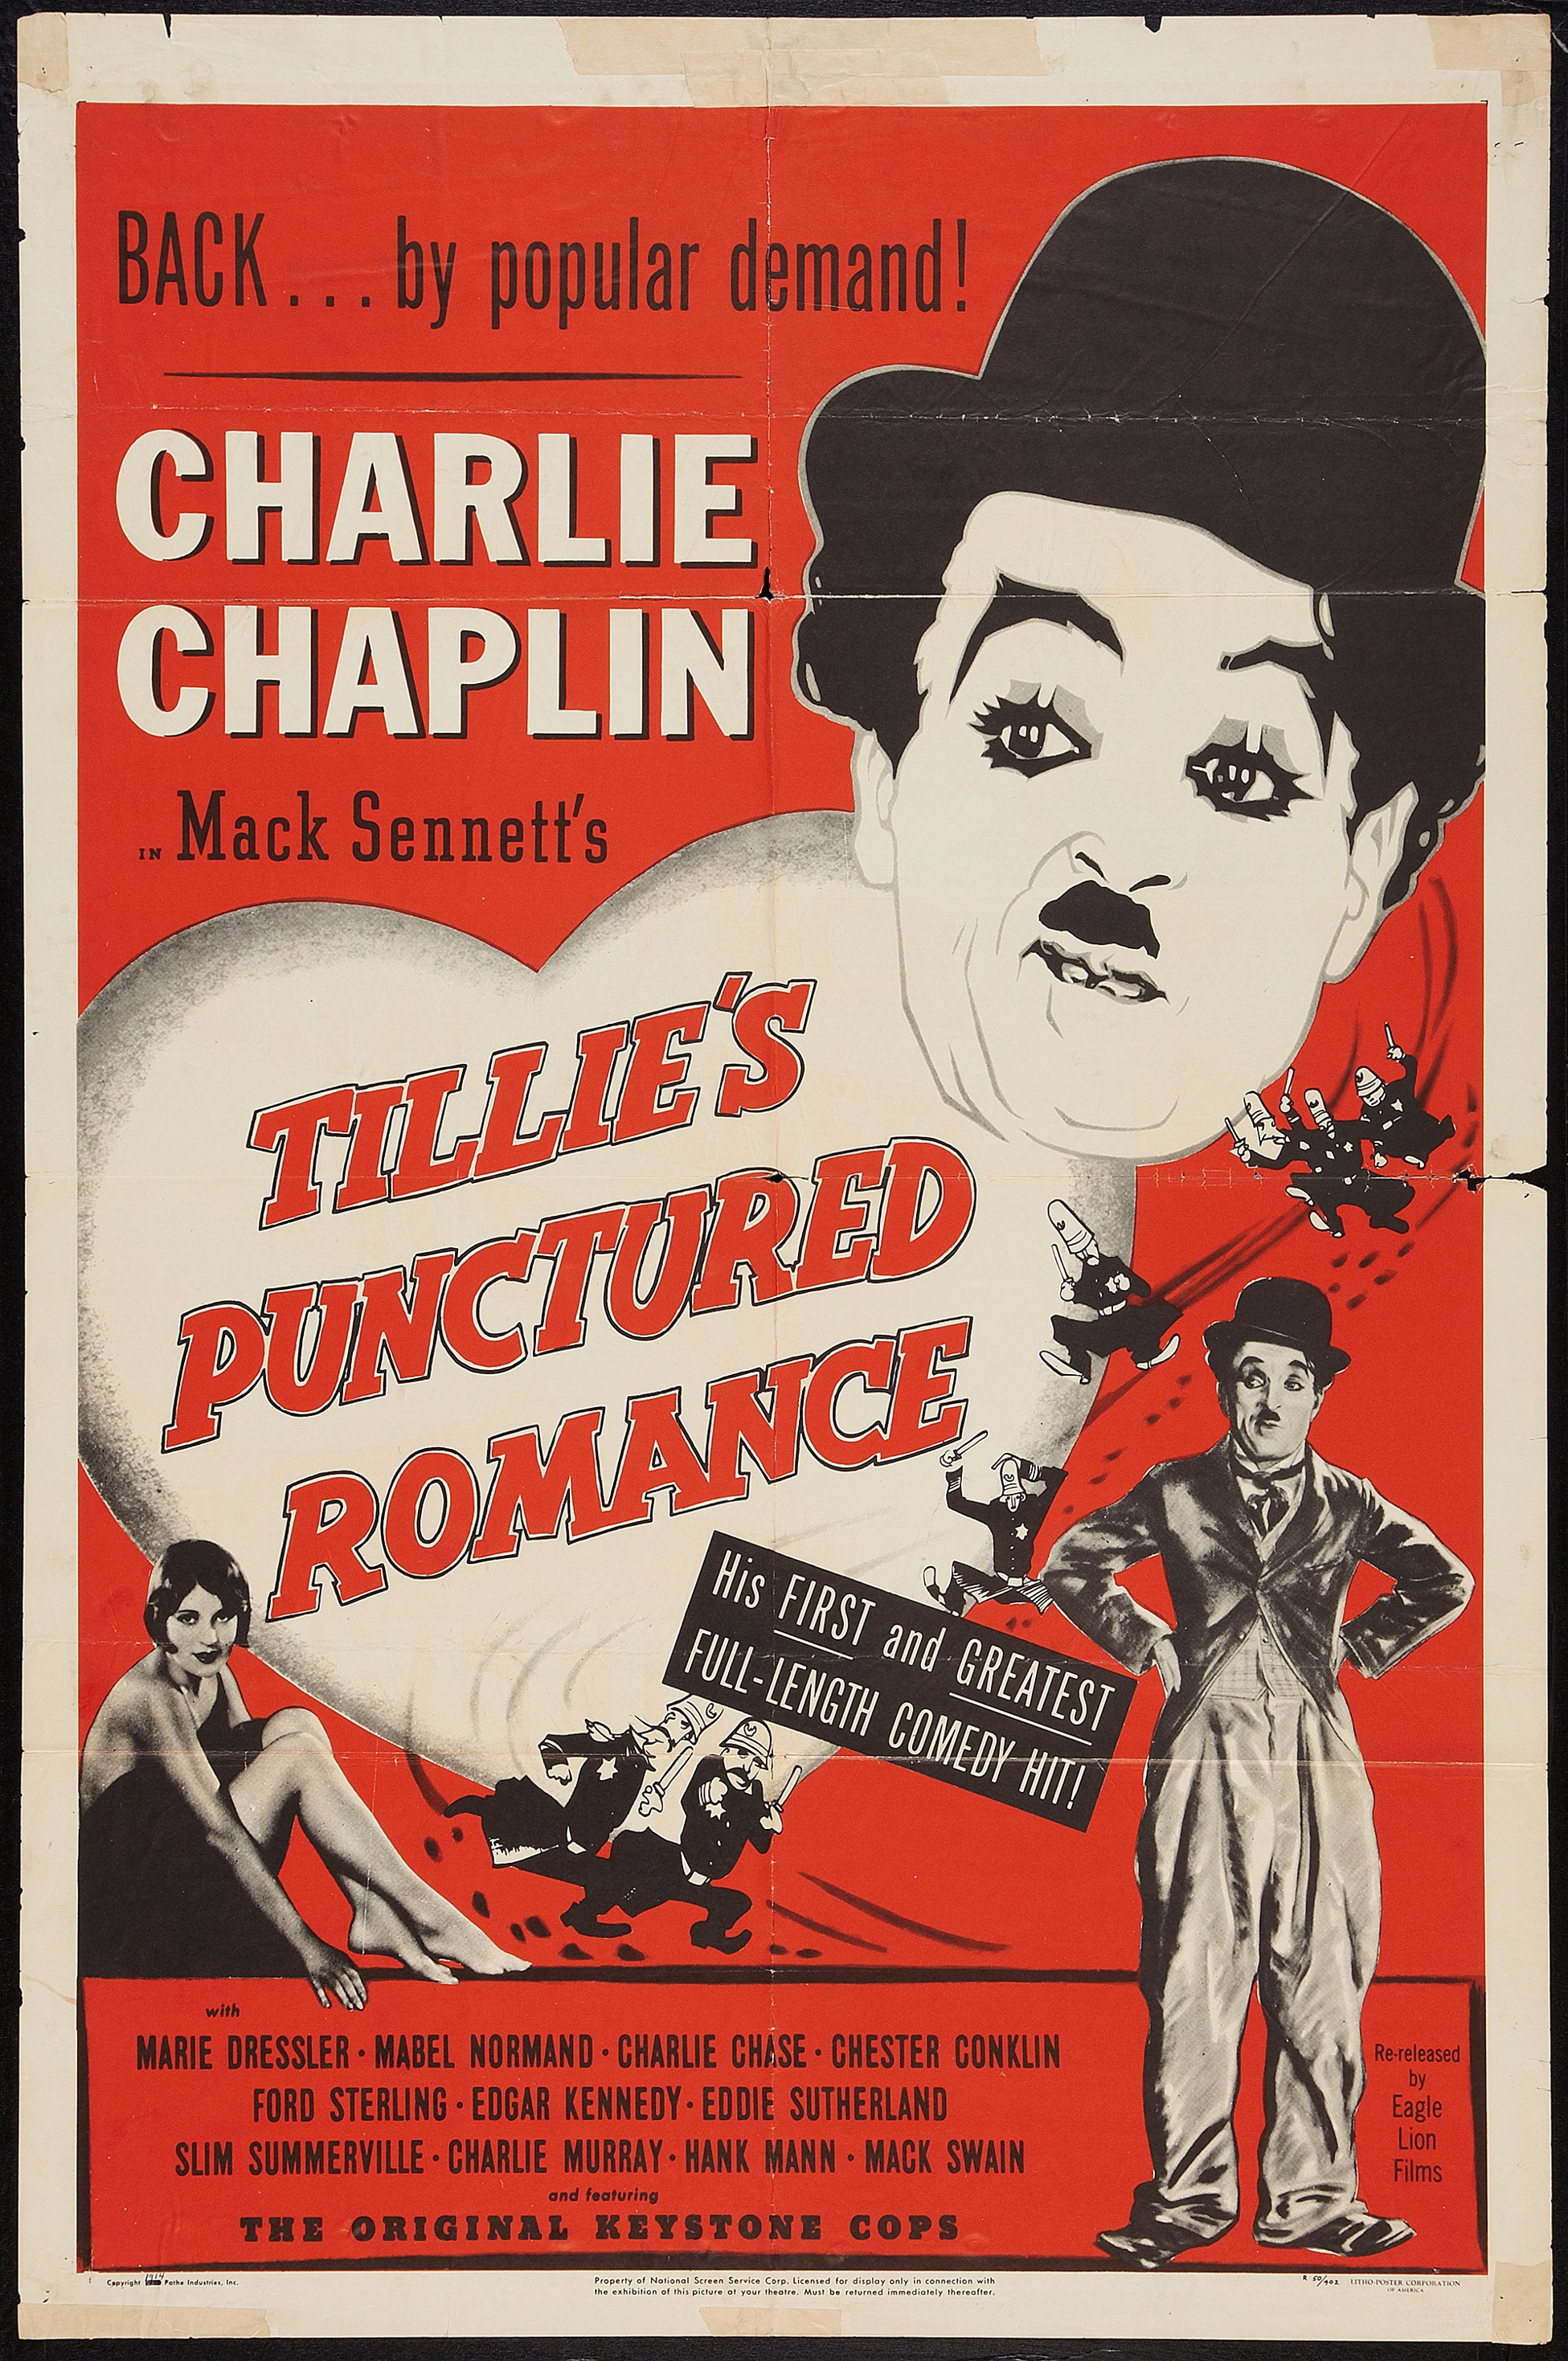 Tillie's Punctured Romance (1914, Charlie Chaplin) US 1950 sound reissue poster